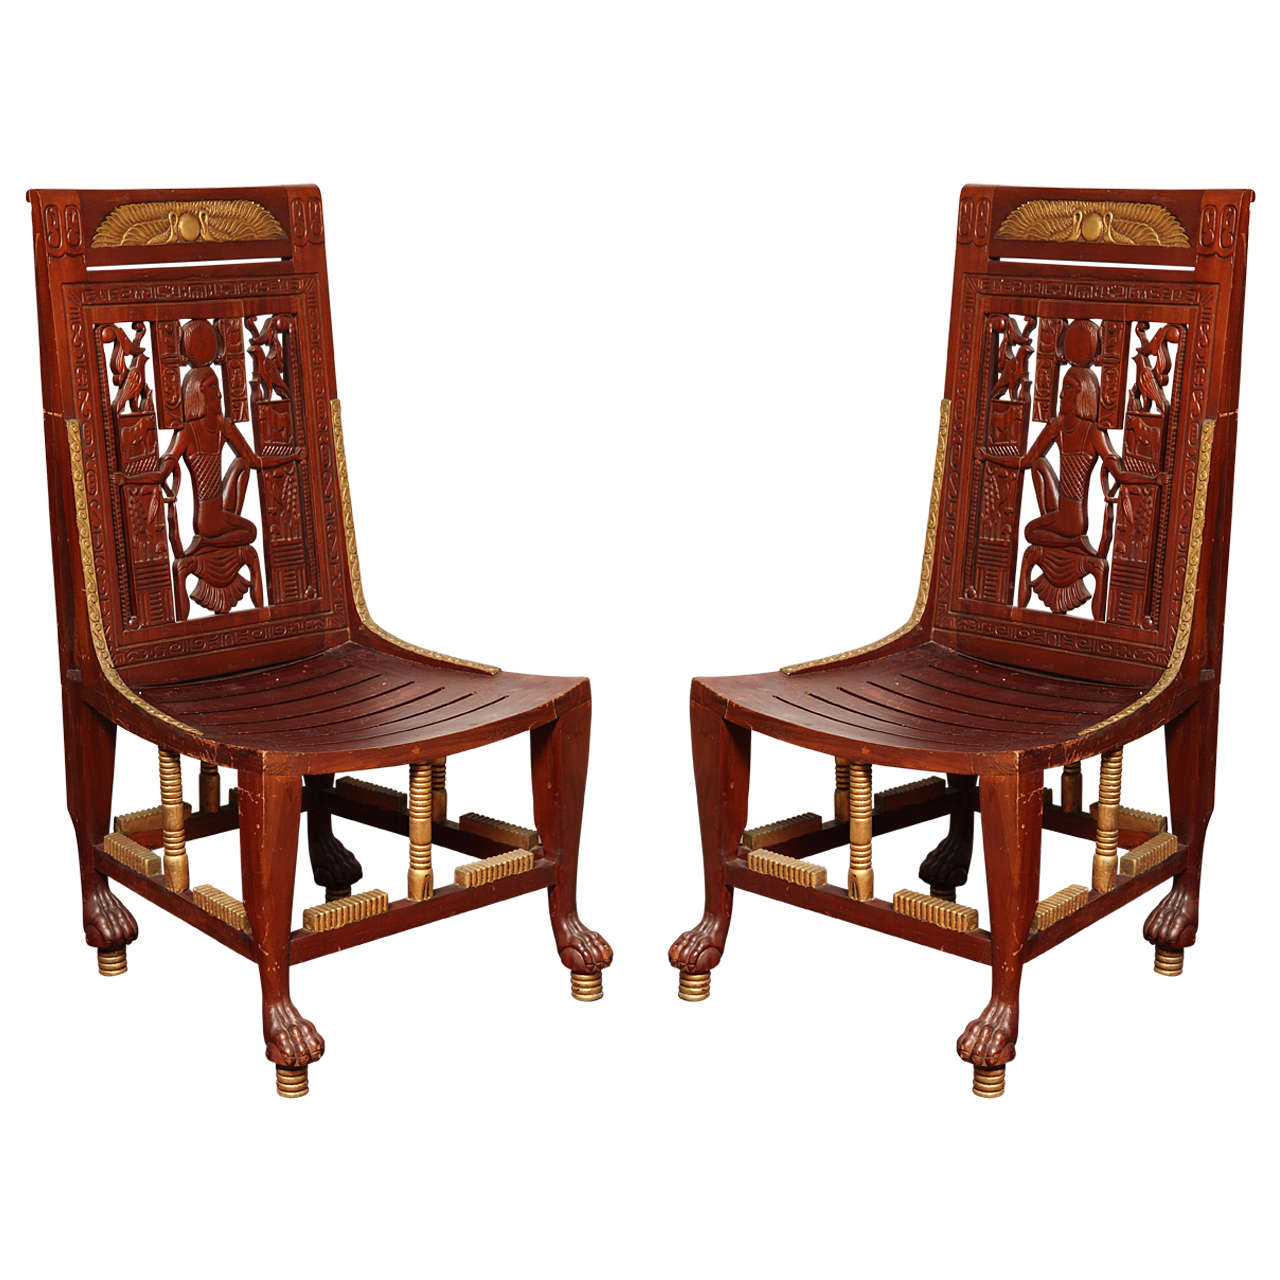 Pair Of Egyptian Revival Chairs For Sale